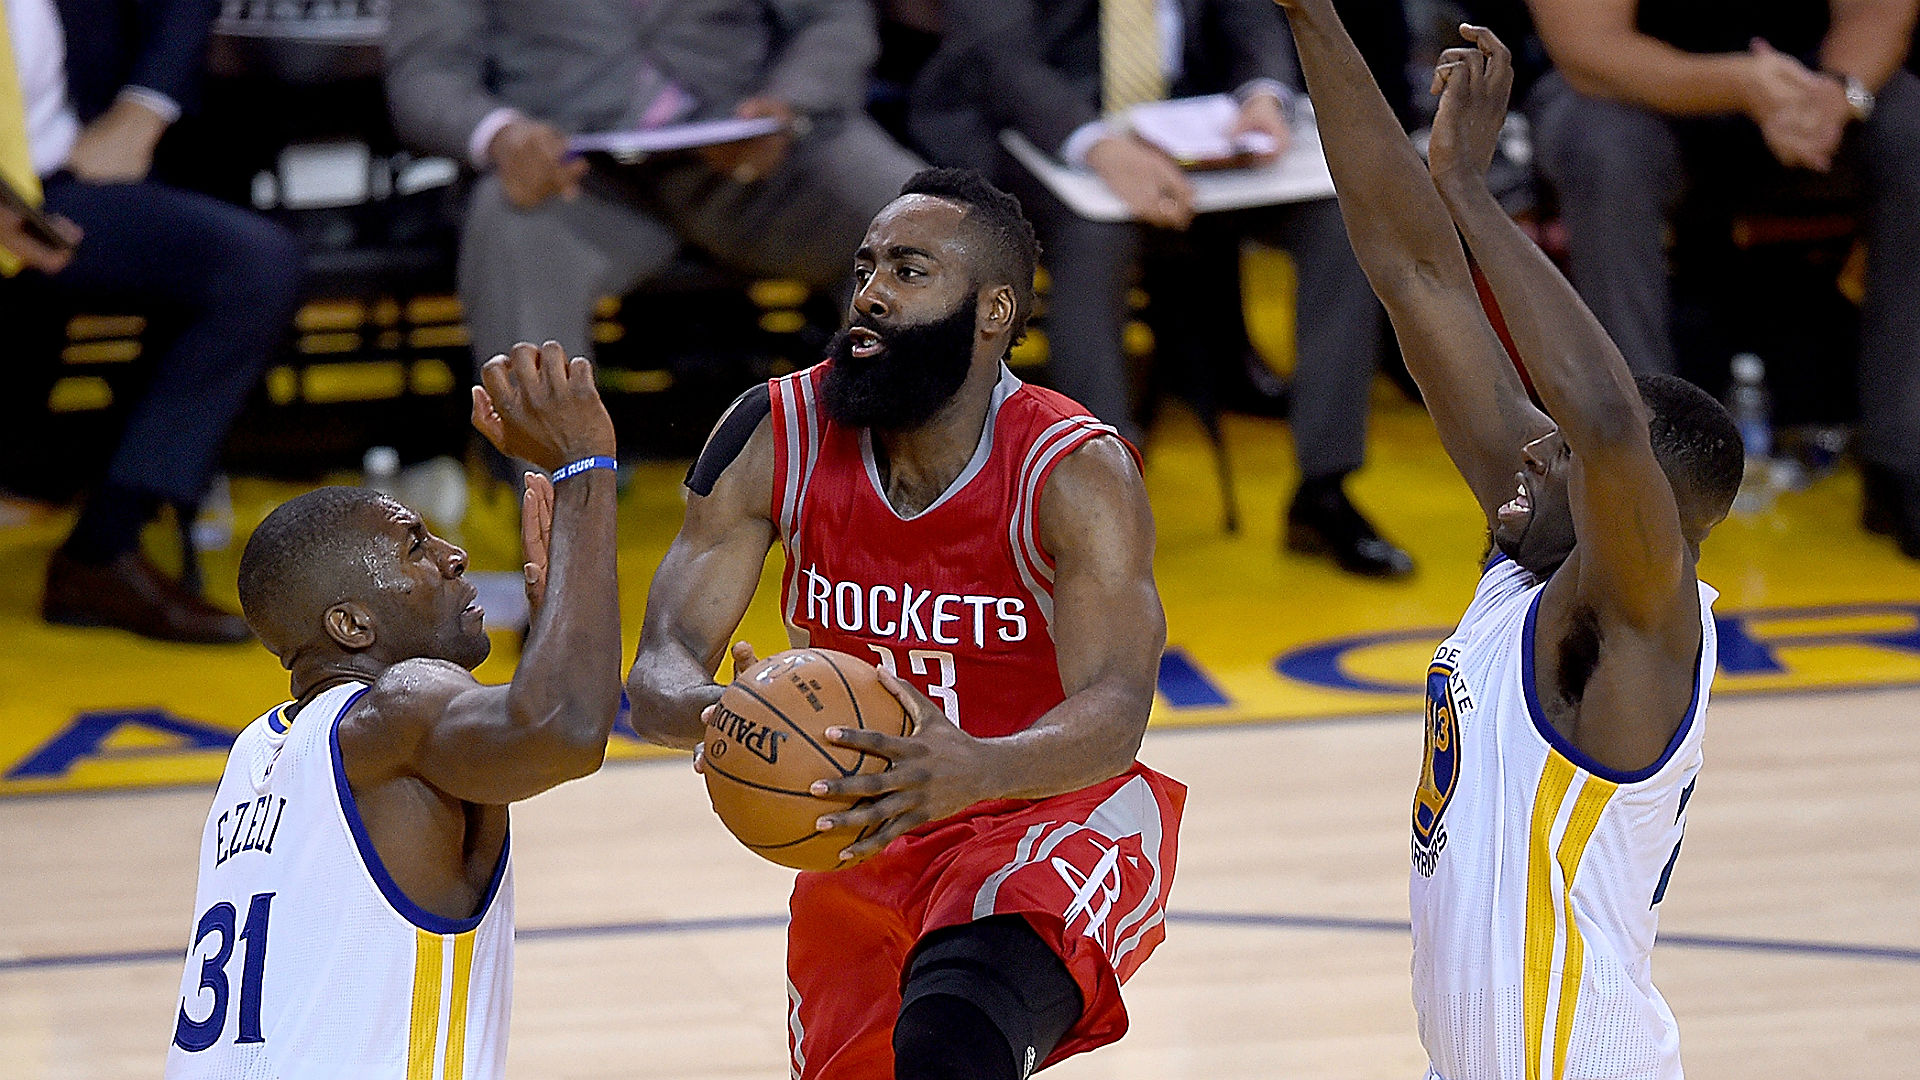 NBA pick of the day – AccuScore offers play on Rockets vs. Warriors Game 2 total